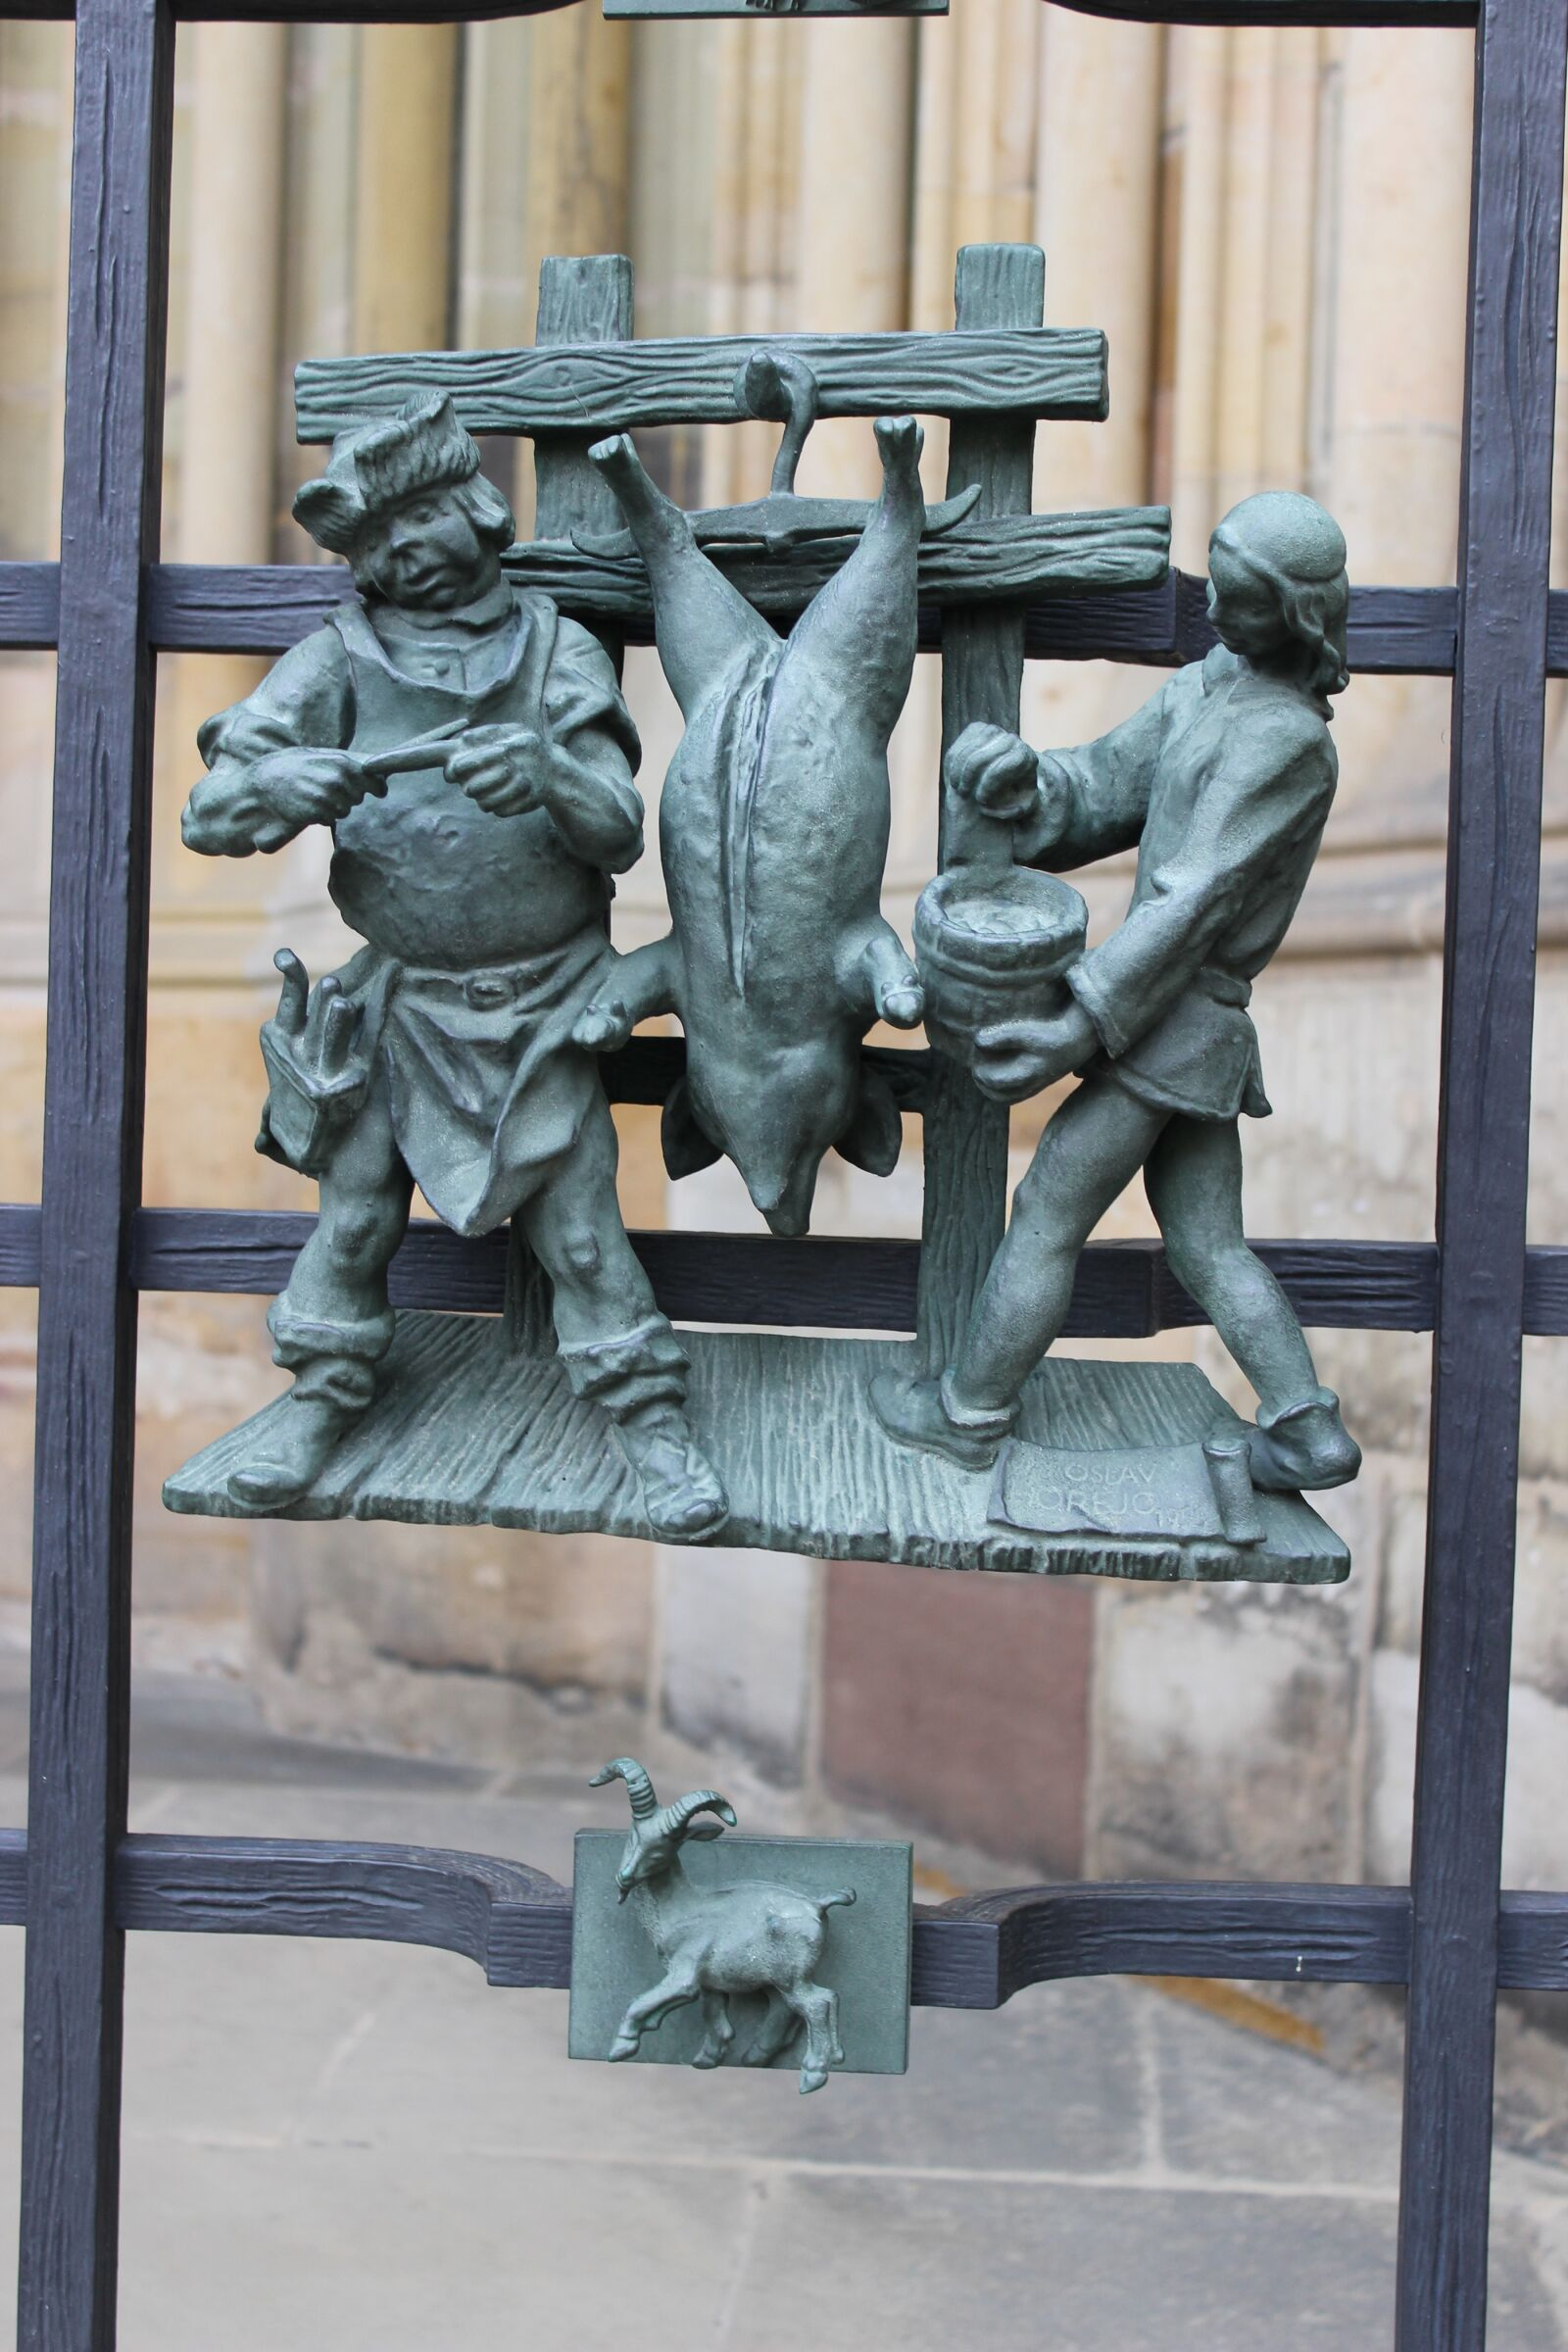 """Canon EOS 600D (Rebel EOS T3i / EOS Kiss X5) sample photo. """"St vitus cathedral, gate"""" photography"""